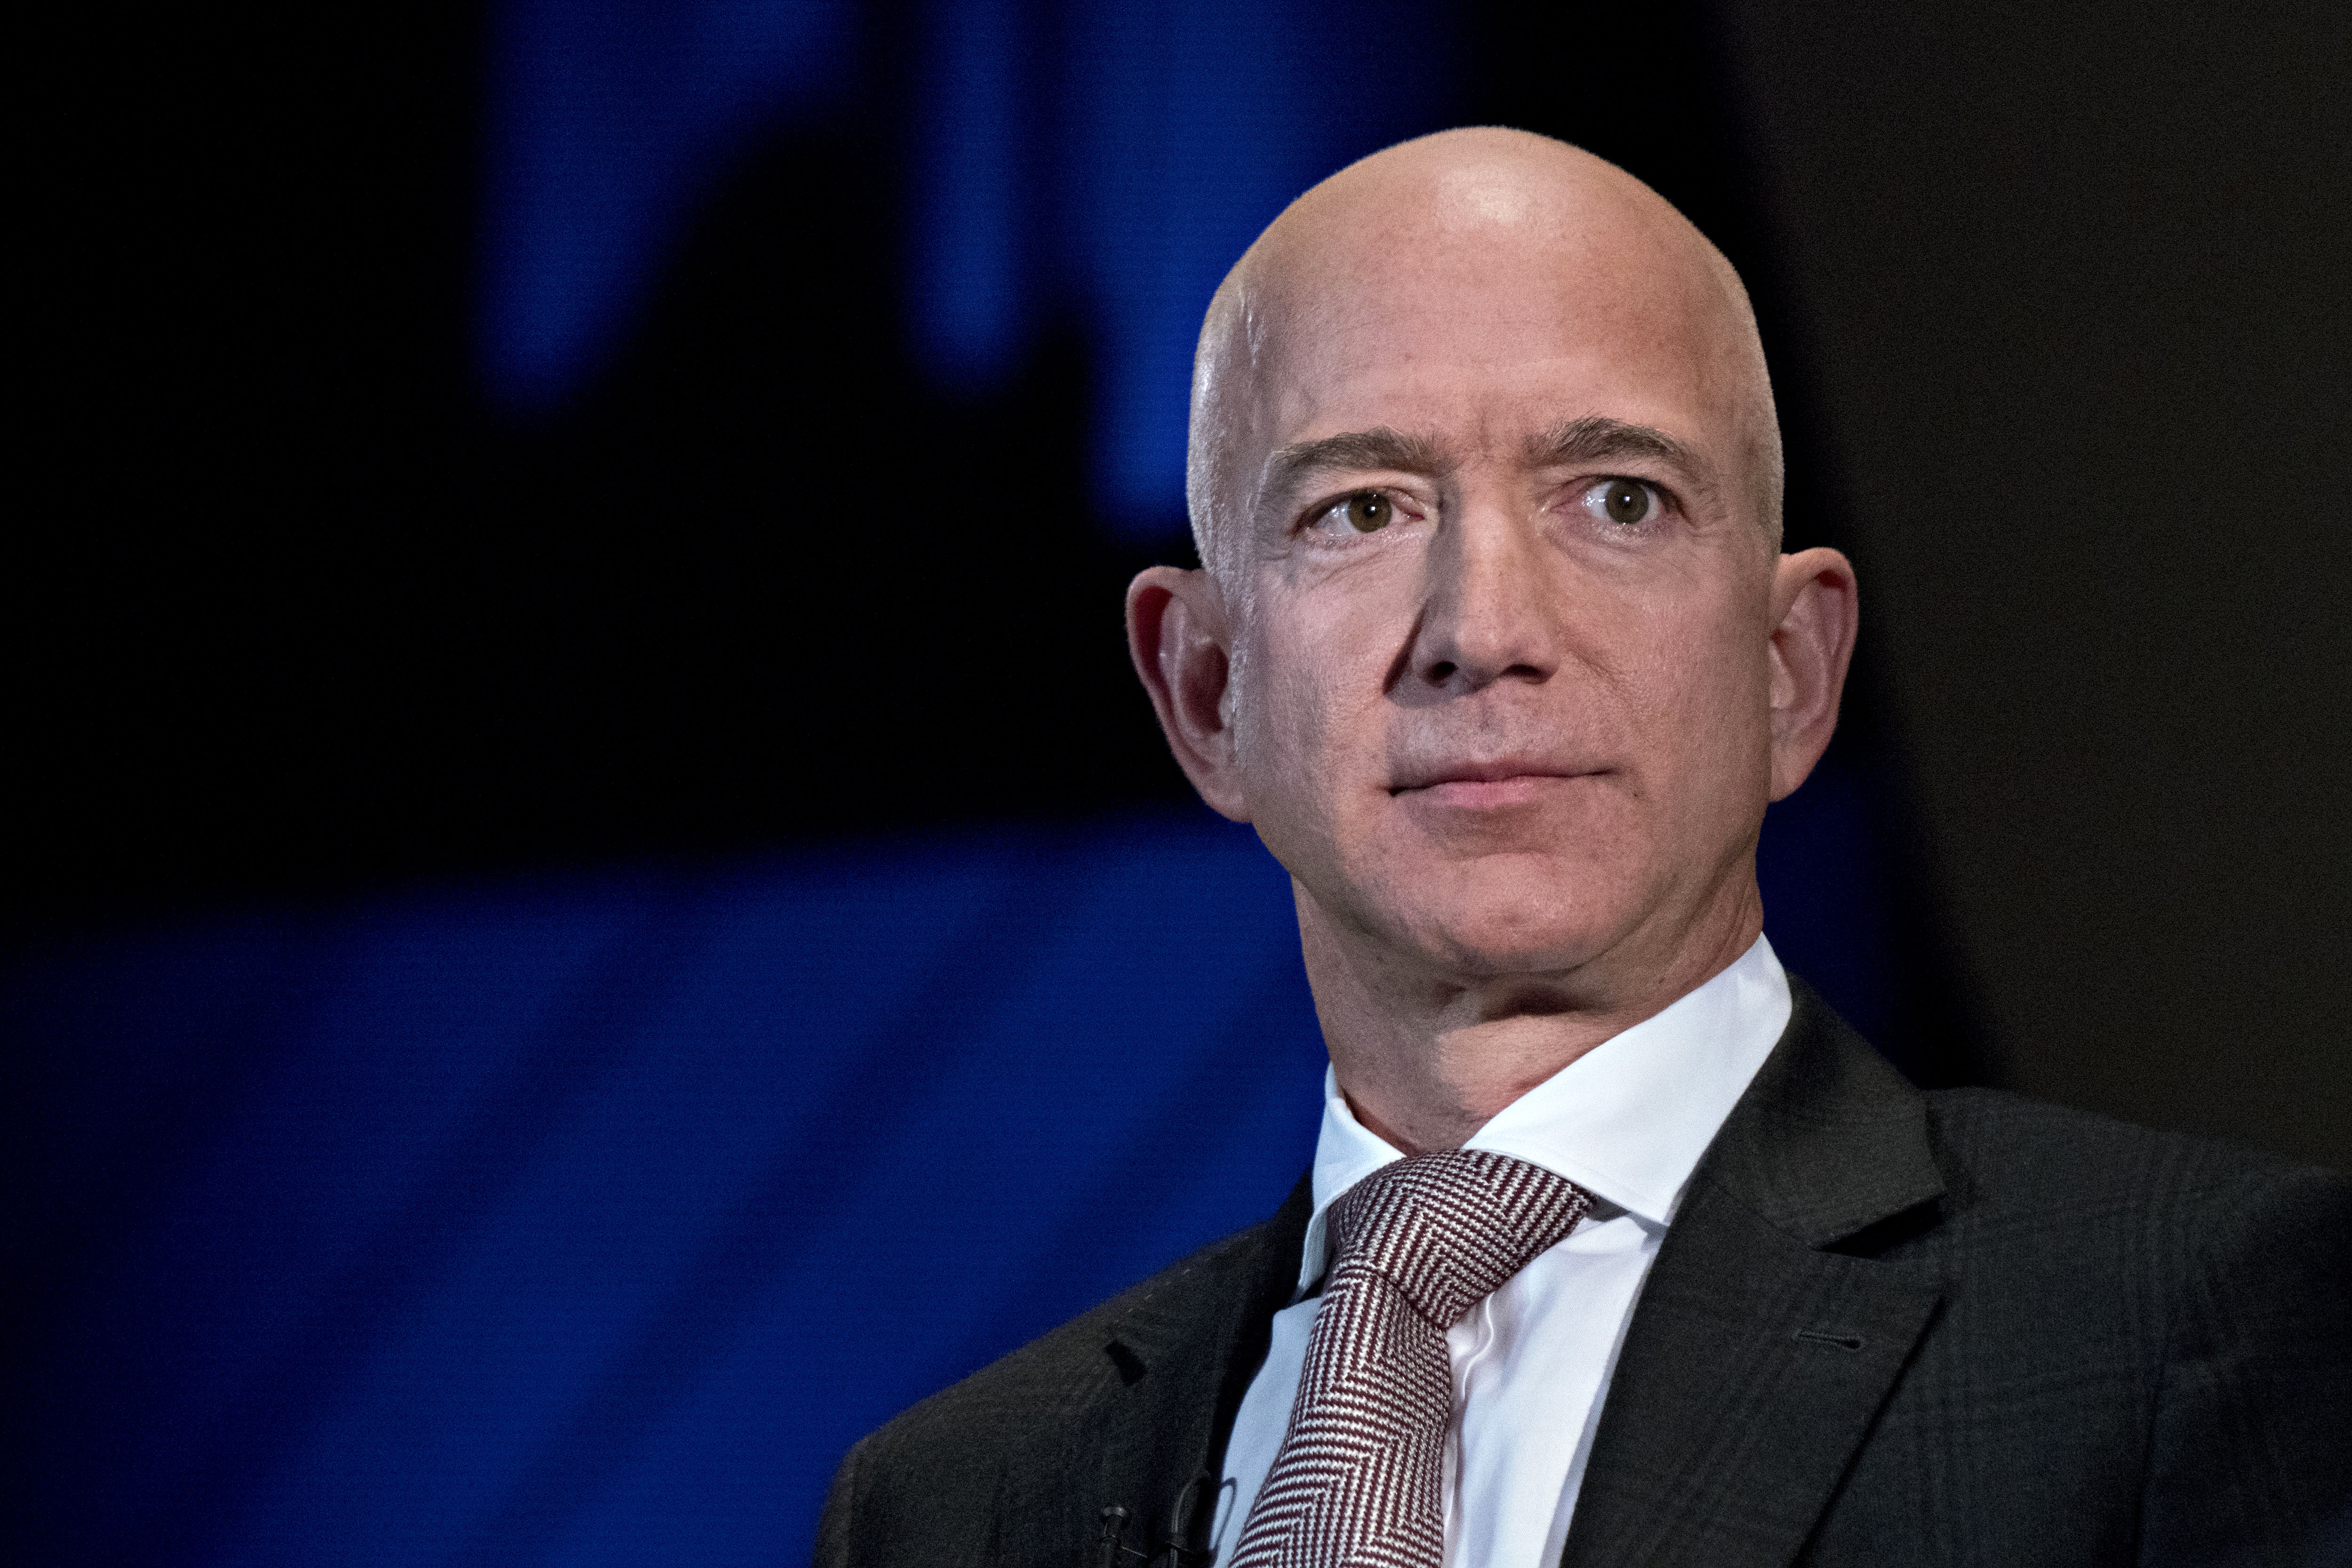 Jeff Bezos is richer than ever